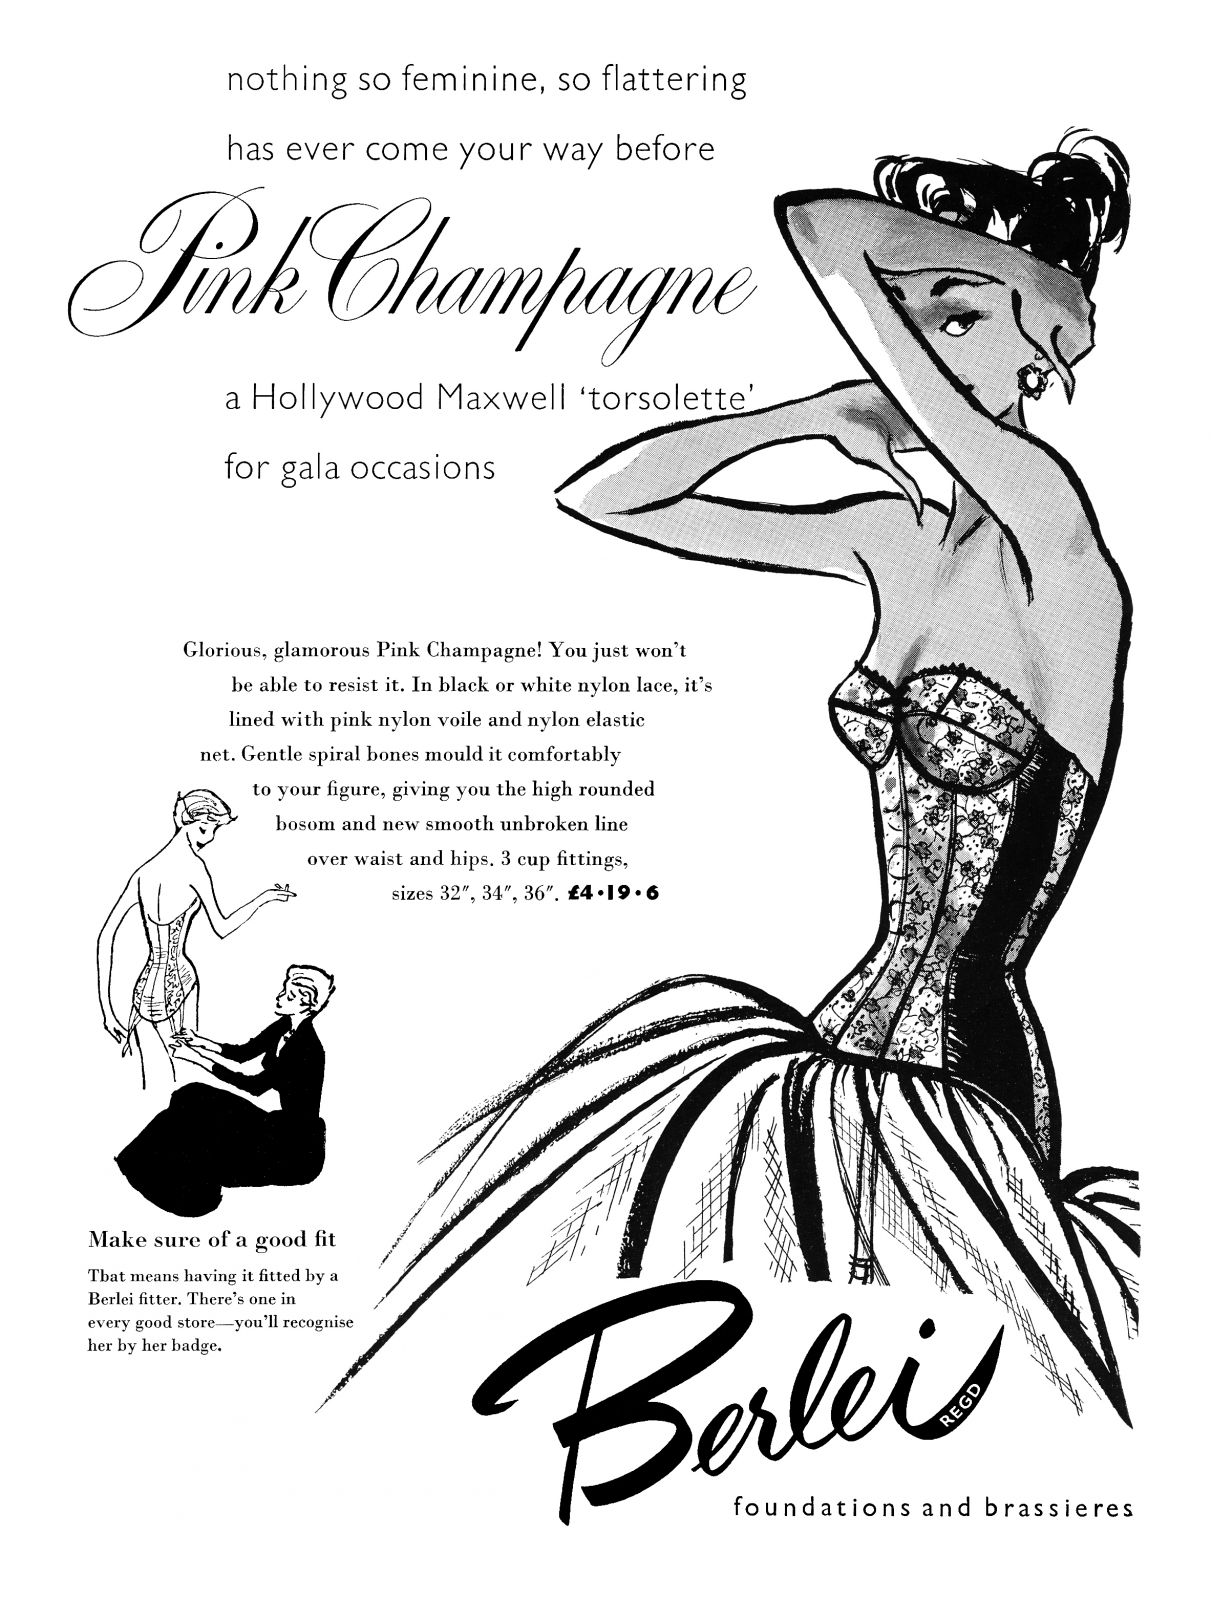 1955 Berlei Pink Champagne ad